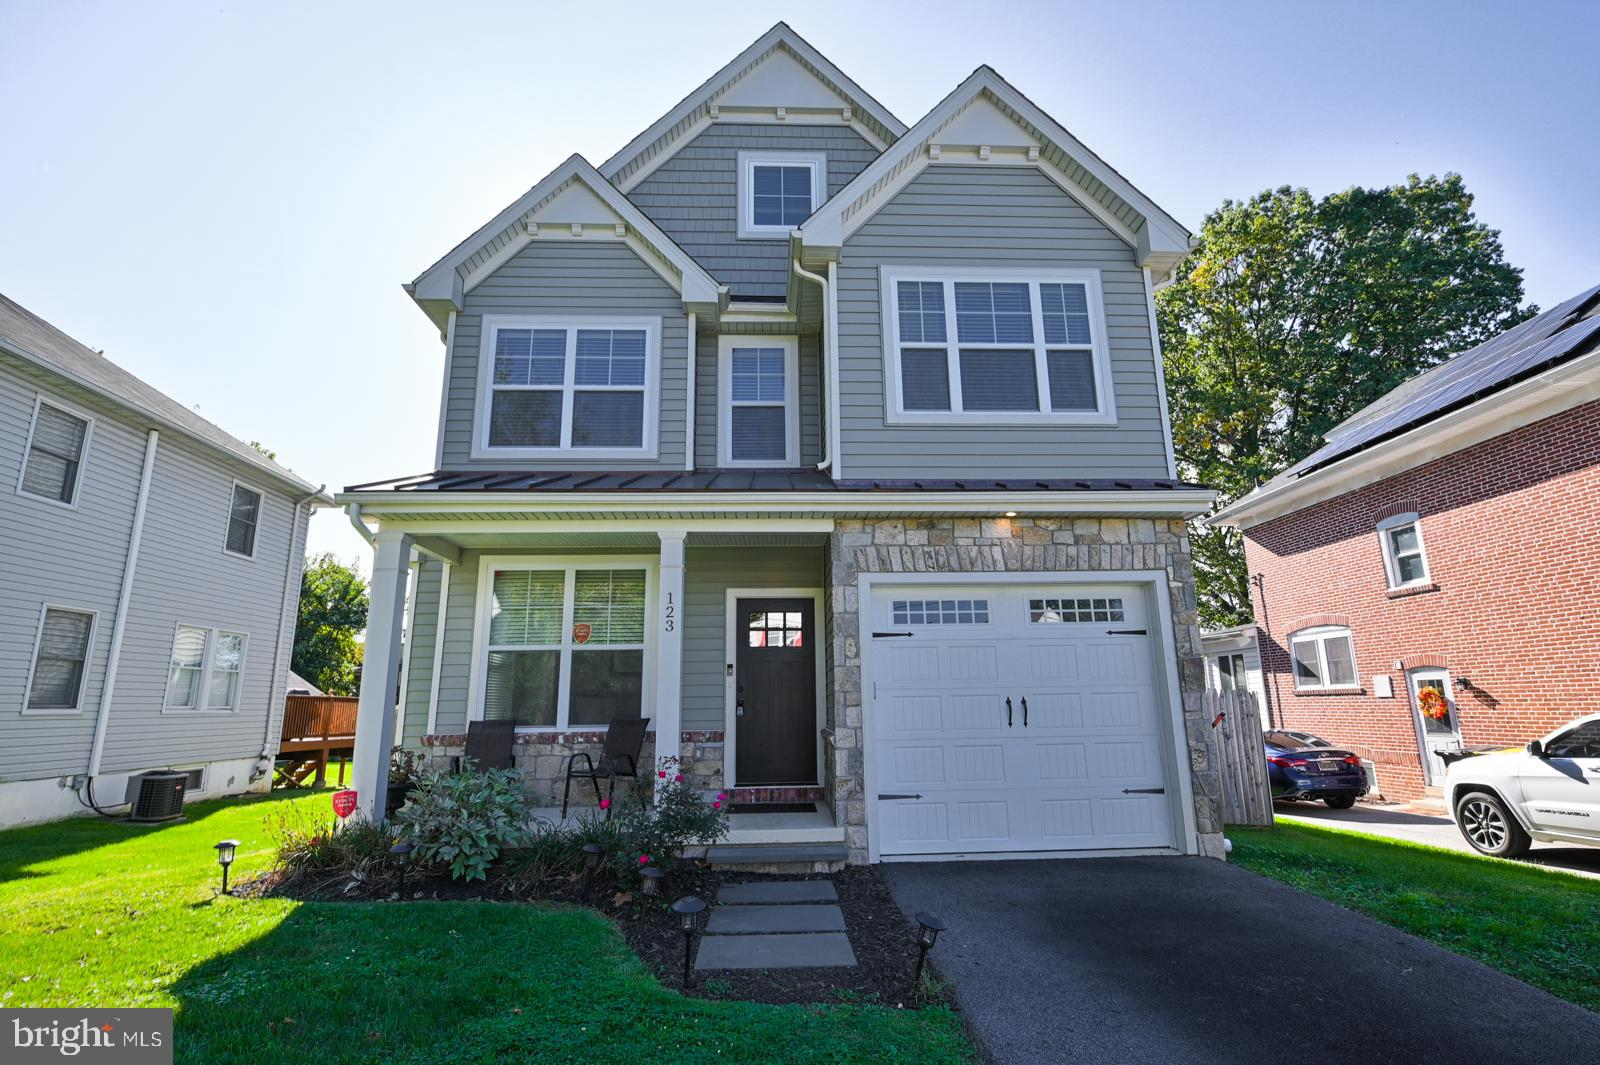 123 WILSON ROAD, KING OF PRUSSIA, PA 19406